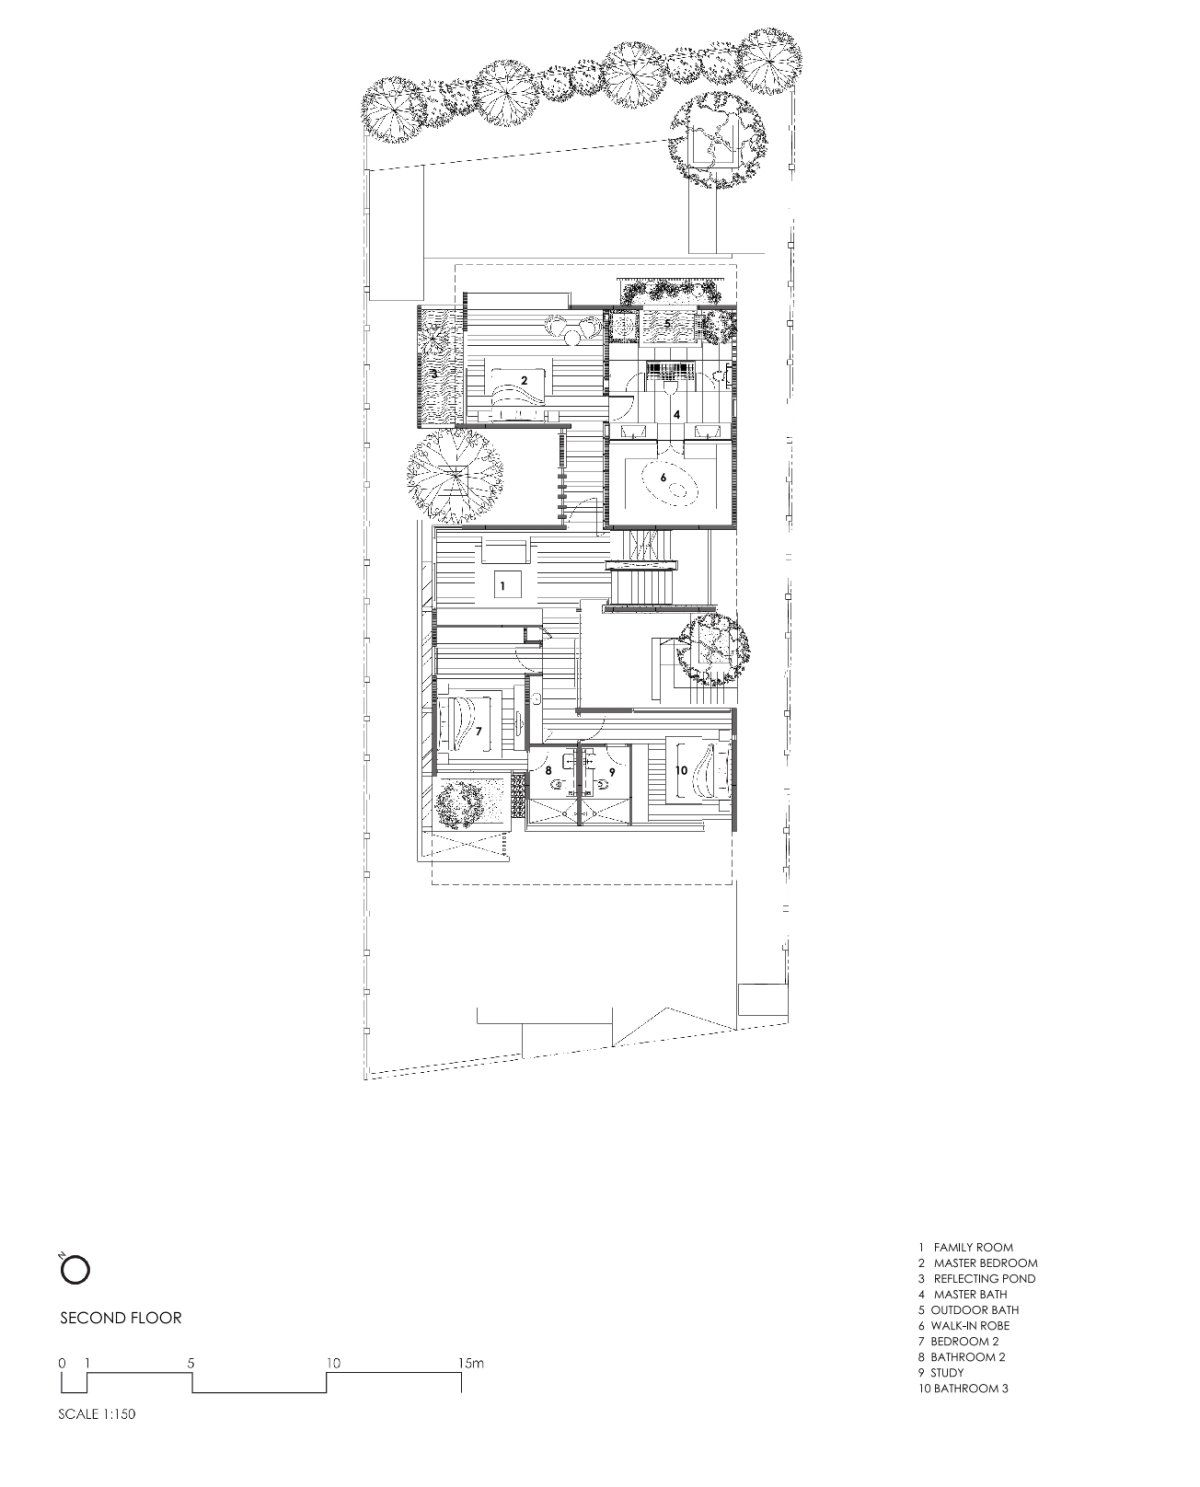 4 master bedroom house plans  sv  Pros  Pinterest  Architects Sunset and House